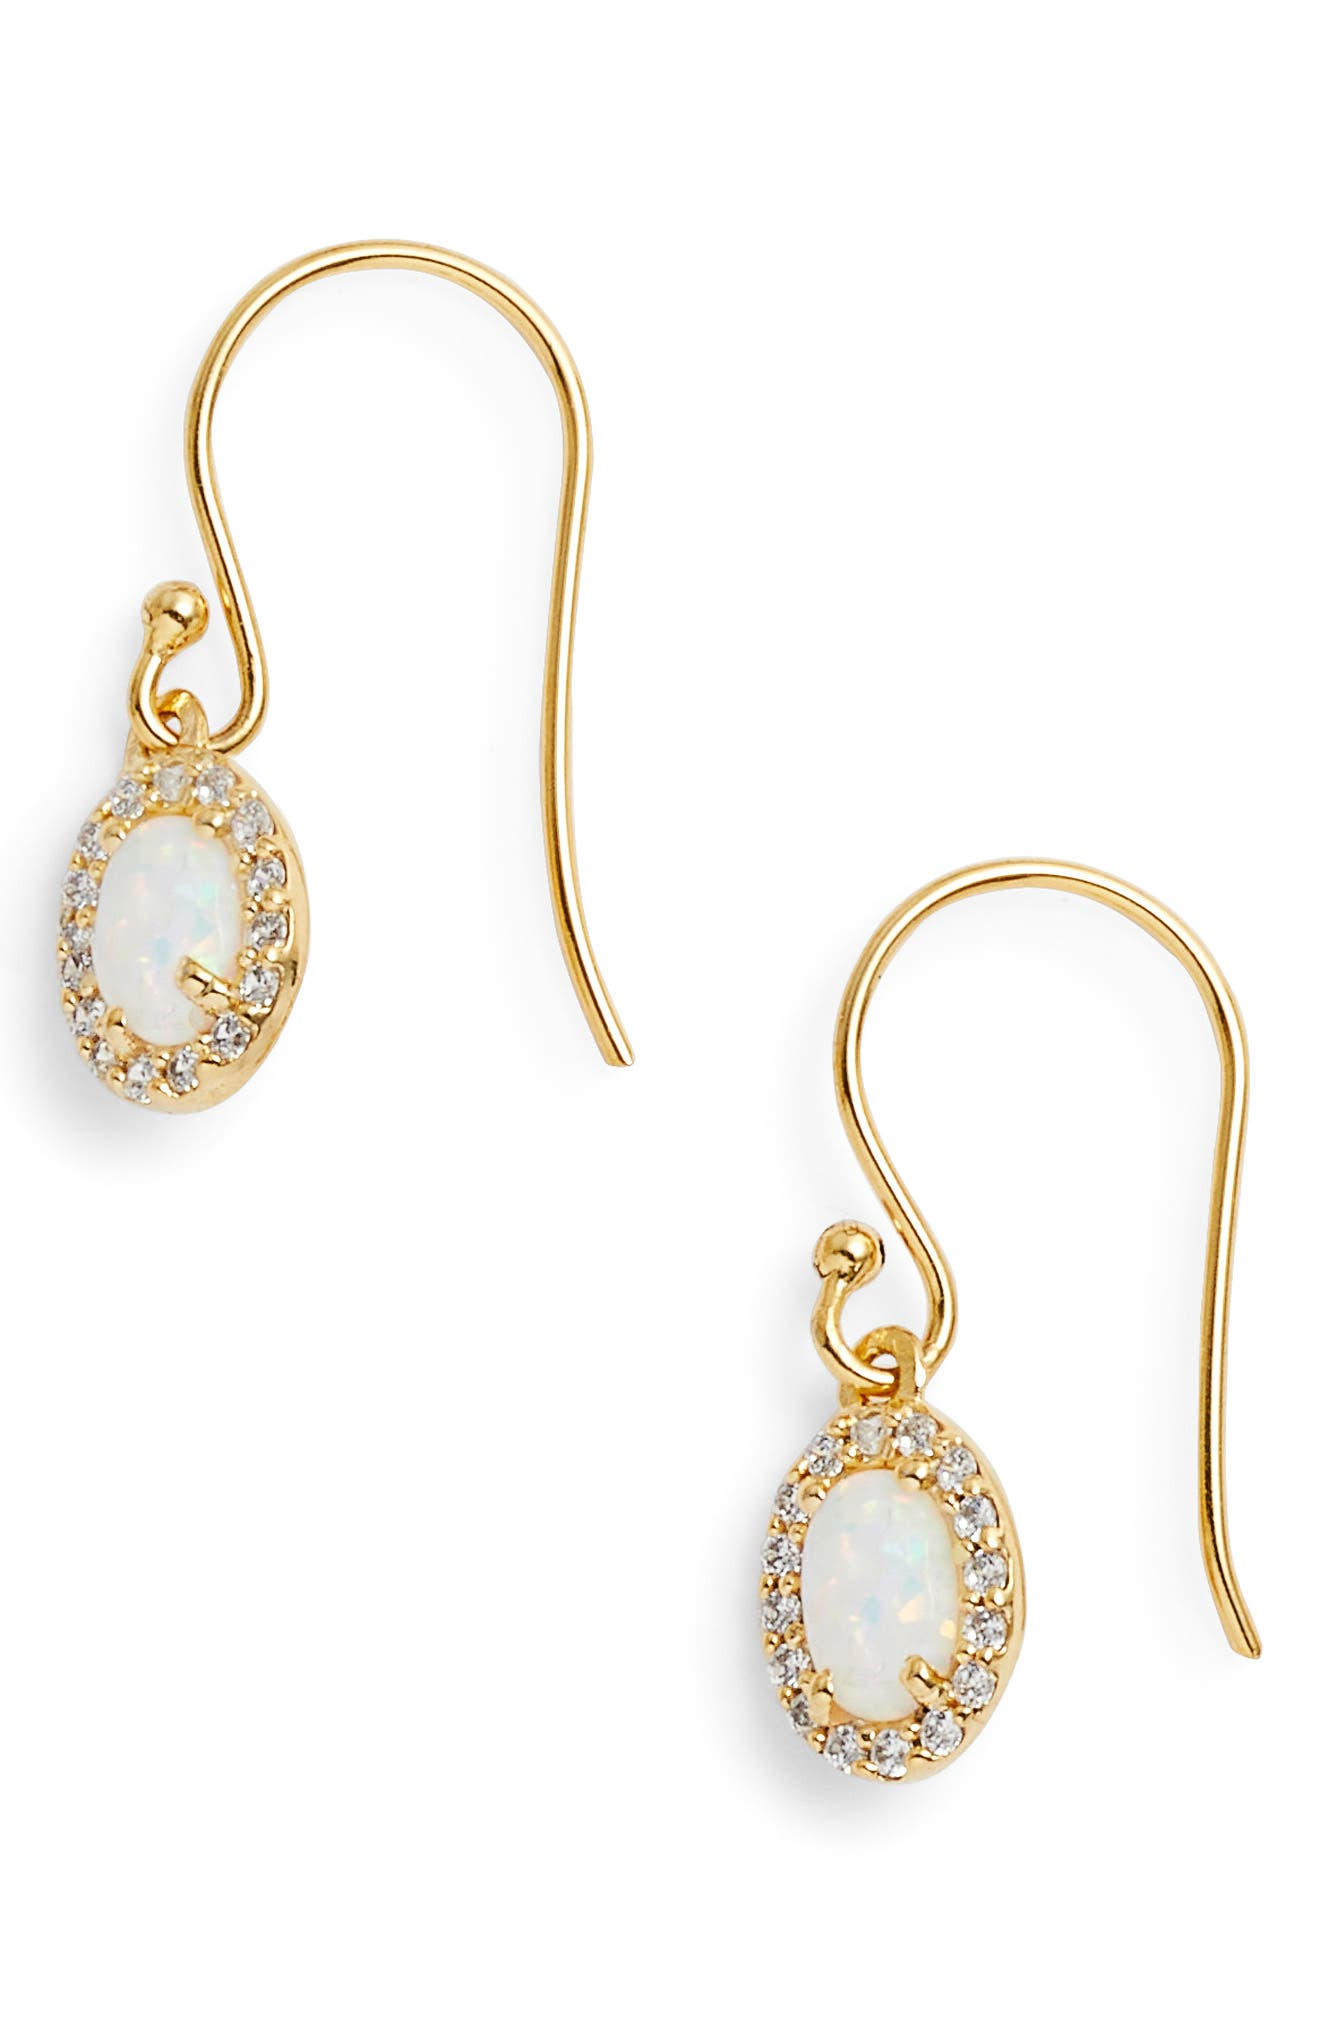 Sydney Oval Drop Earrings,                         Main,                         color, Gold